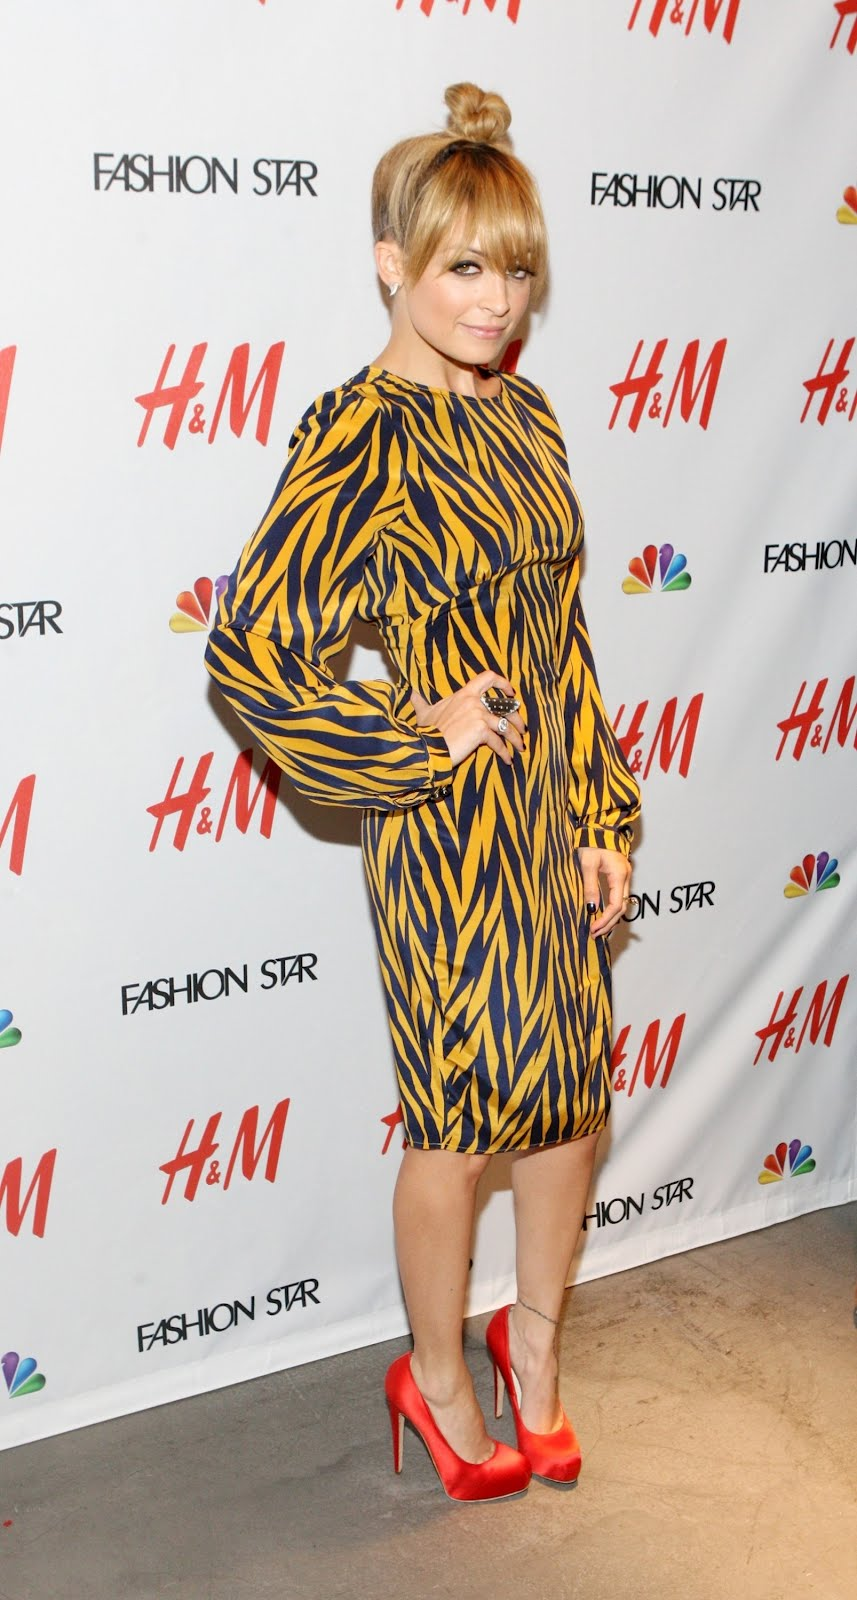 "NICOLE RICHIE FASHION: NBC's ""Fashion star"" event at the H ..."